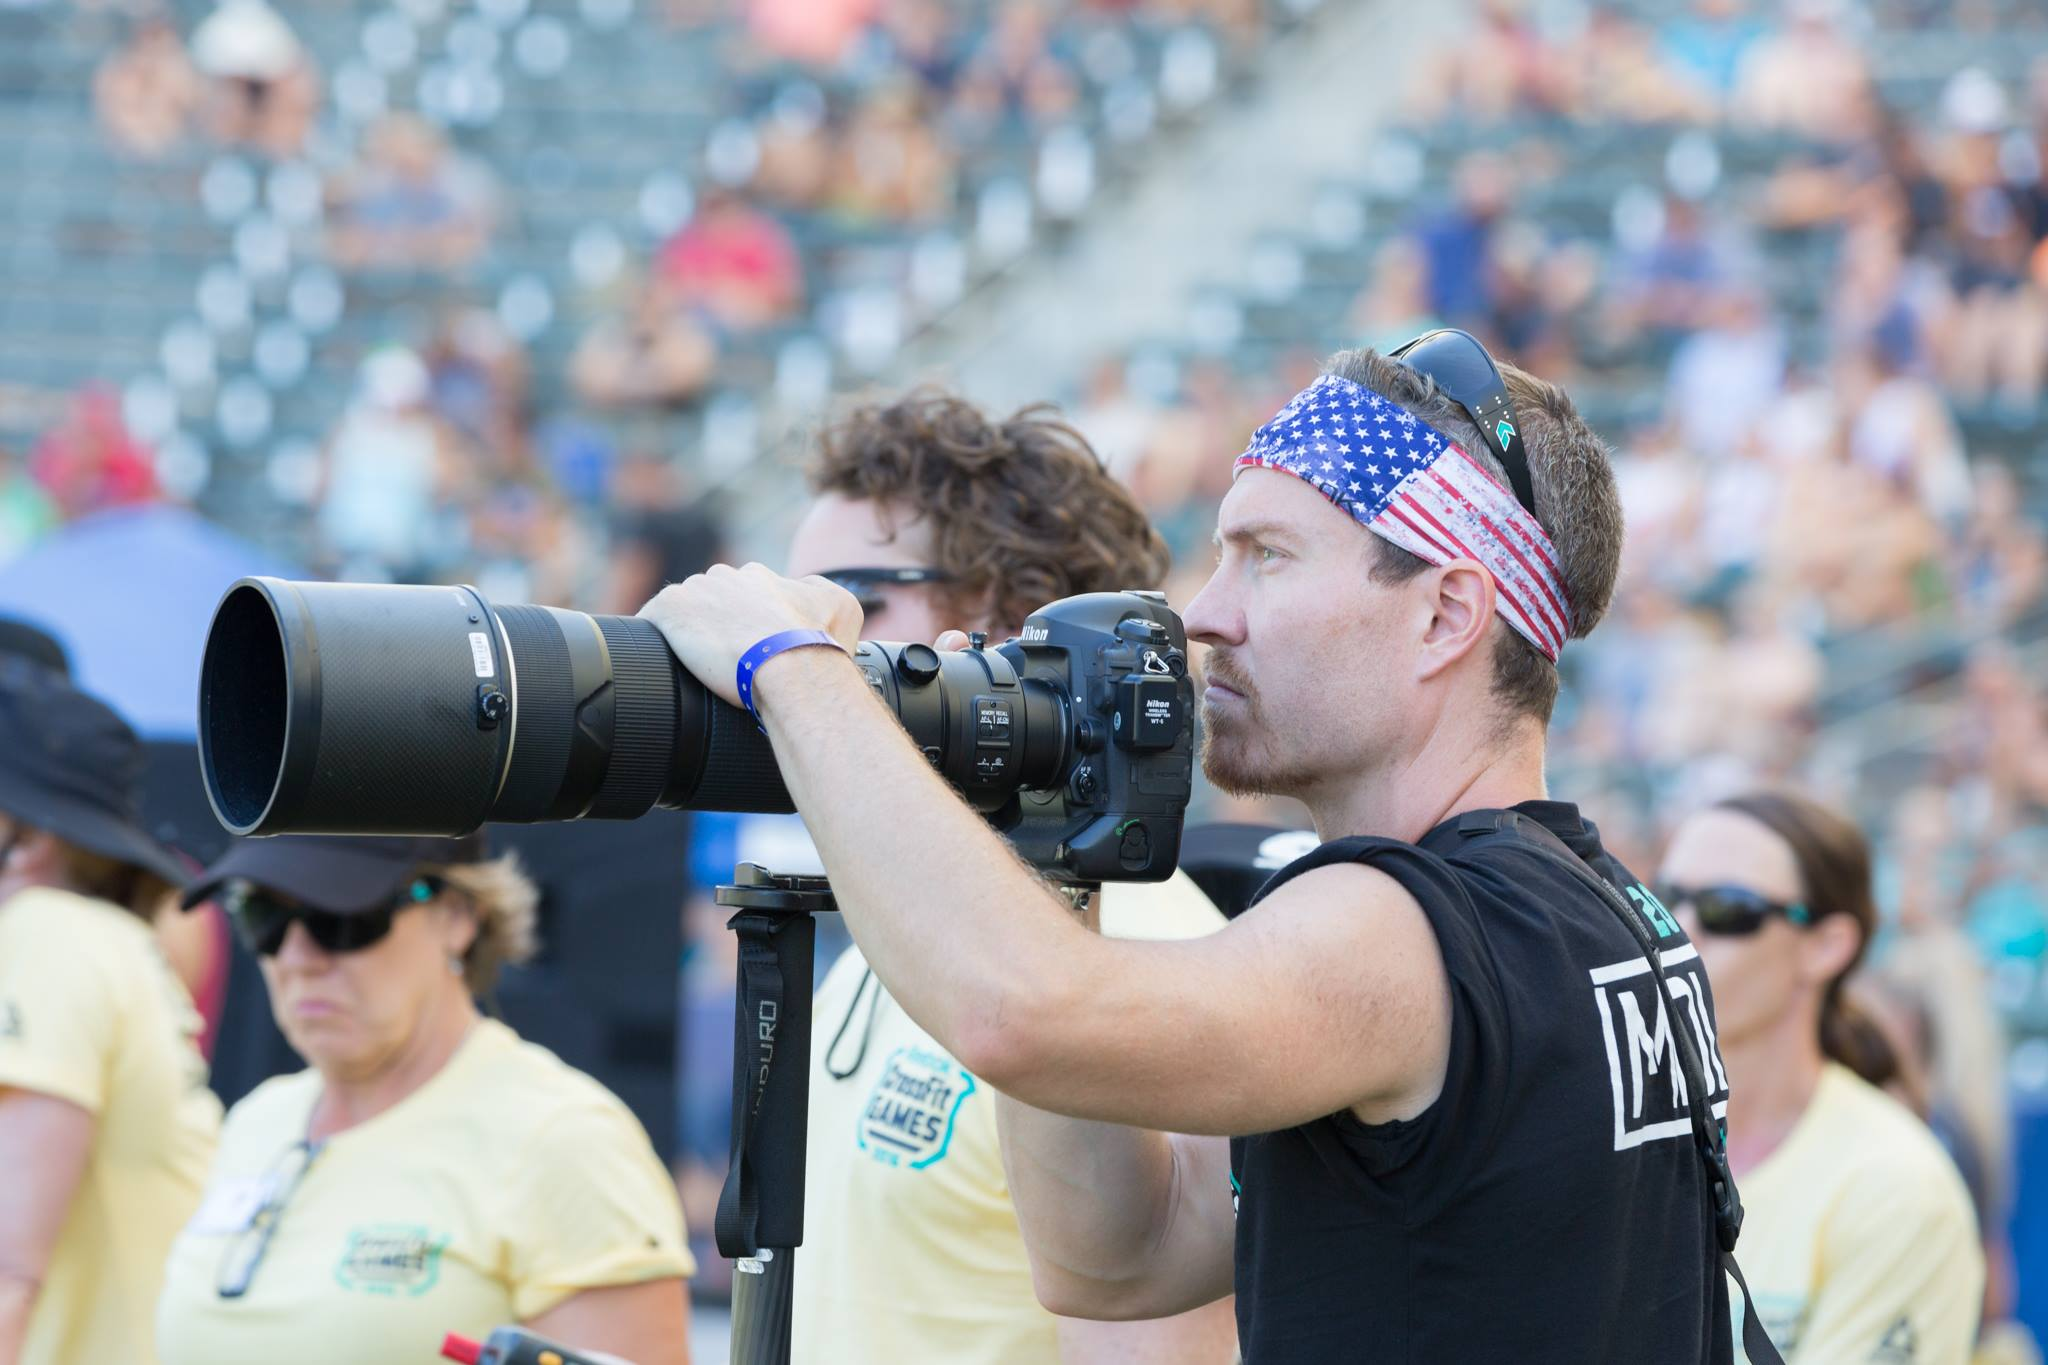 Pondering tacos with the Nikon 200-400.  Photo Cred CrossFit Inc, Colleen Baz